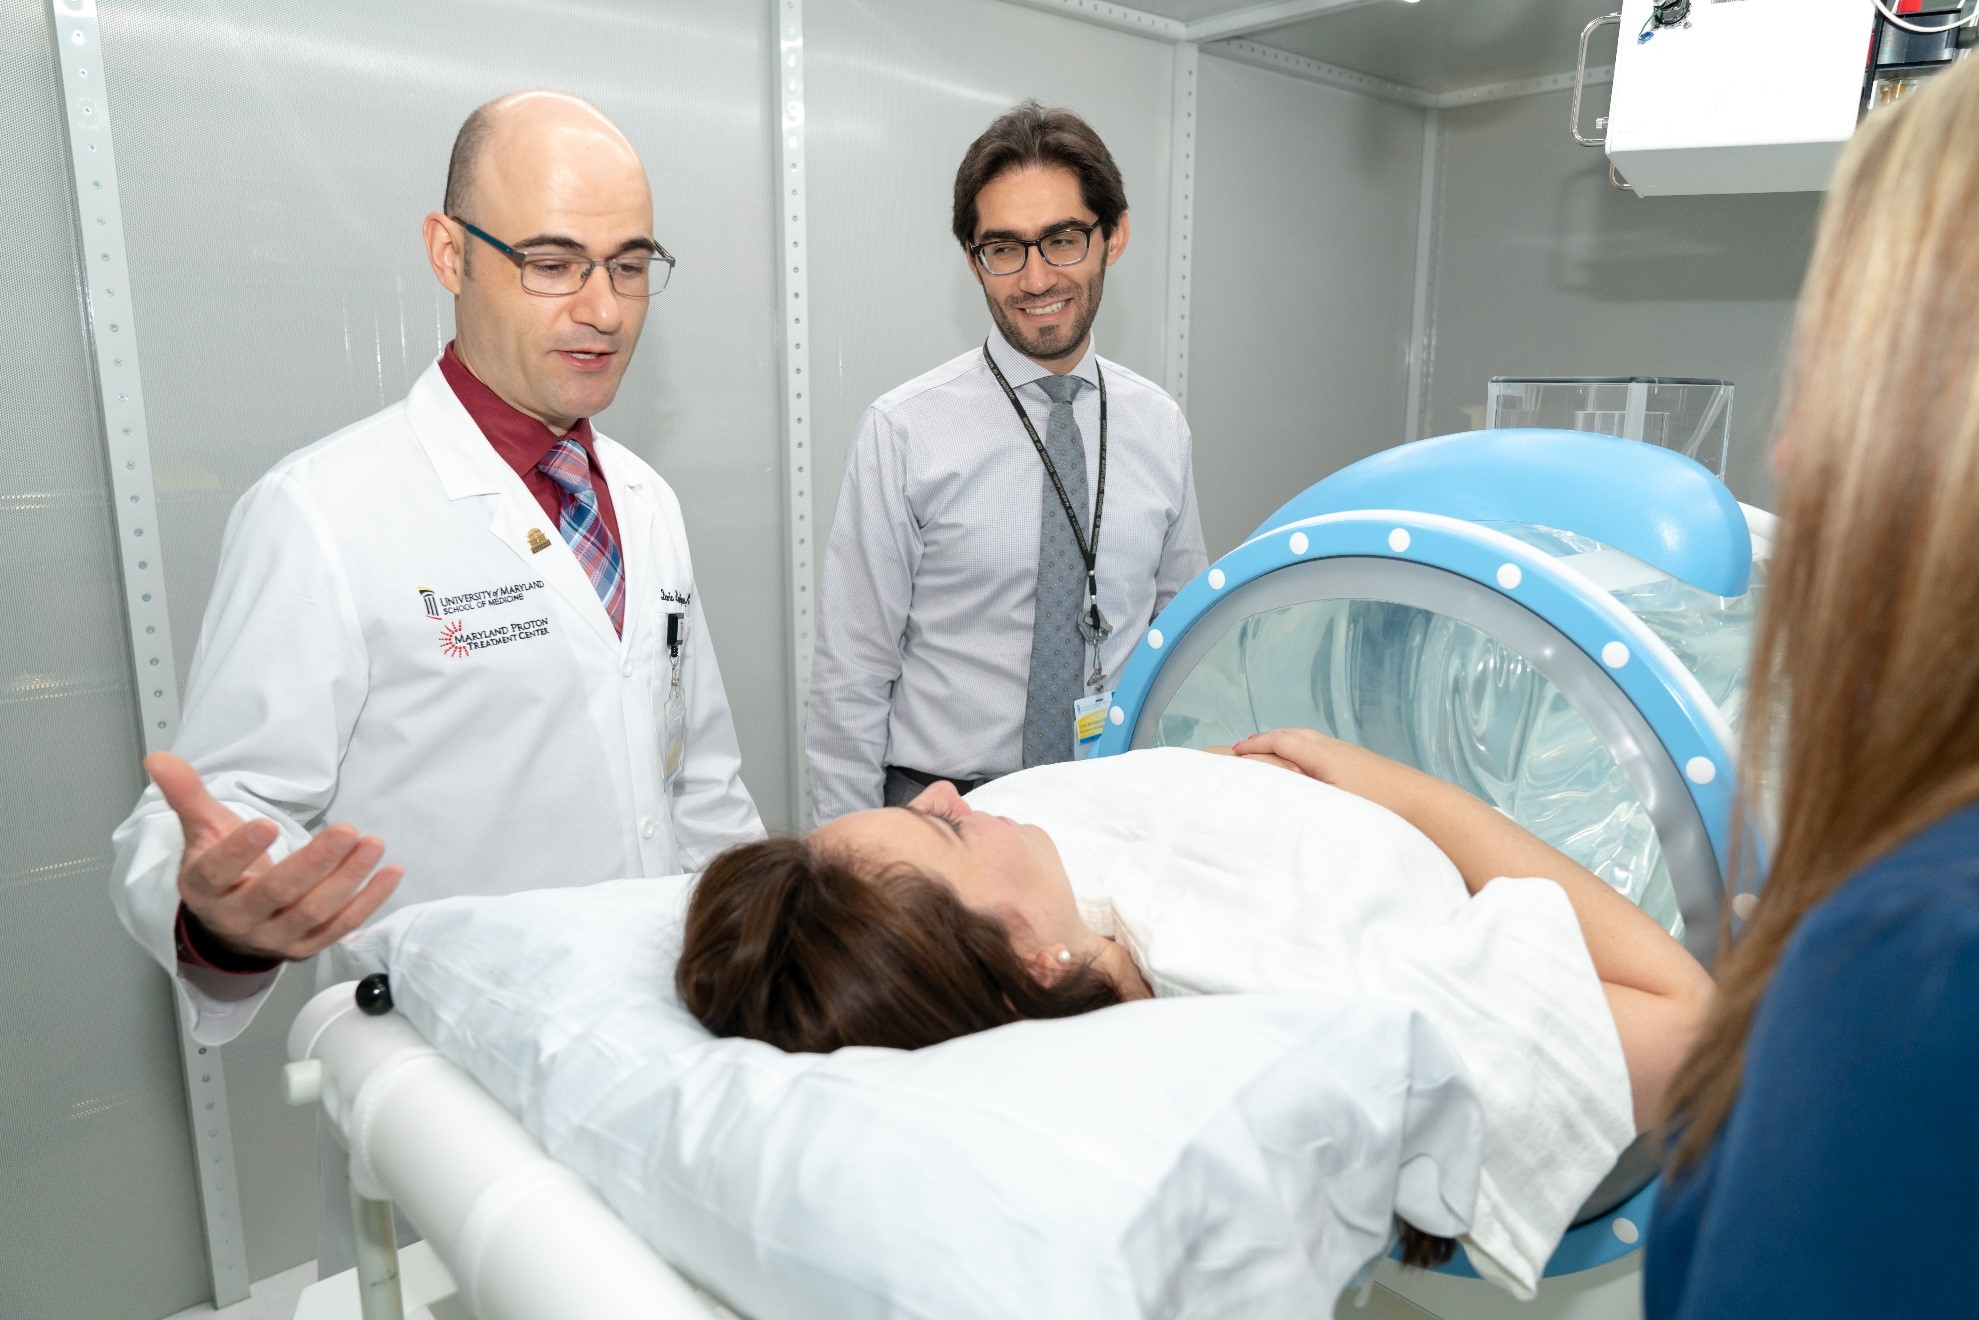 Dr. Rodrigues Thermal Therapy